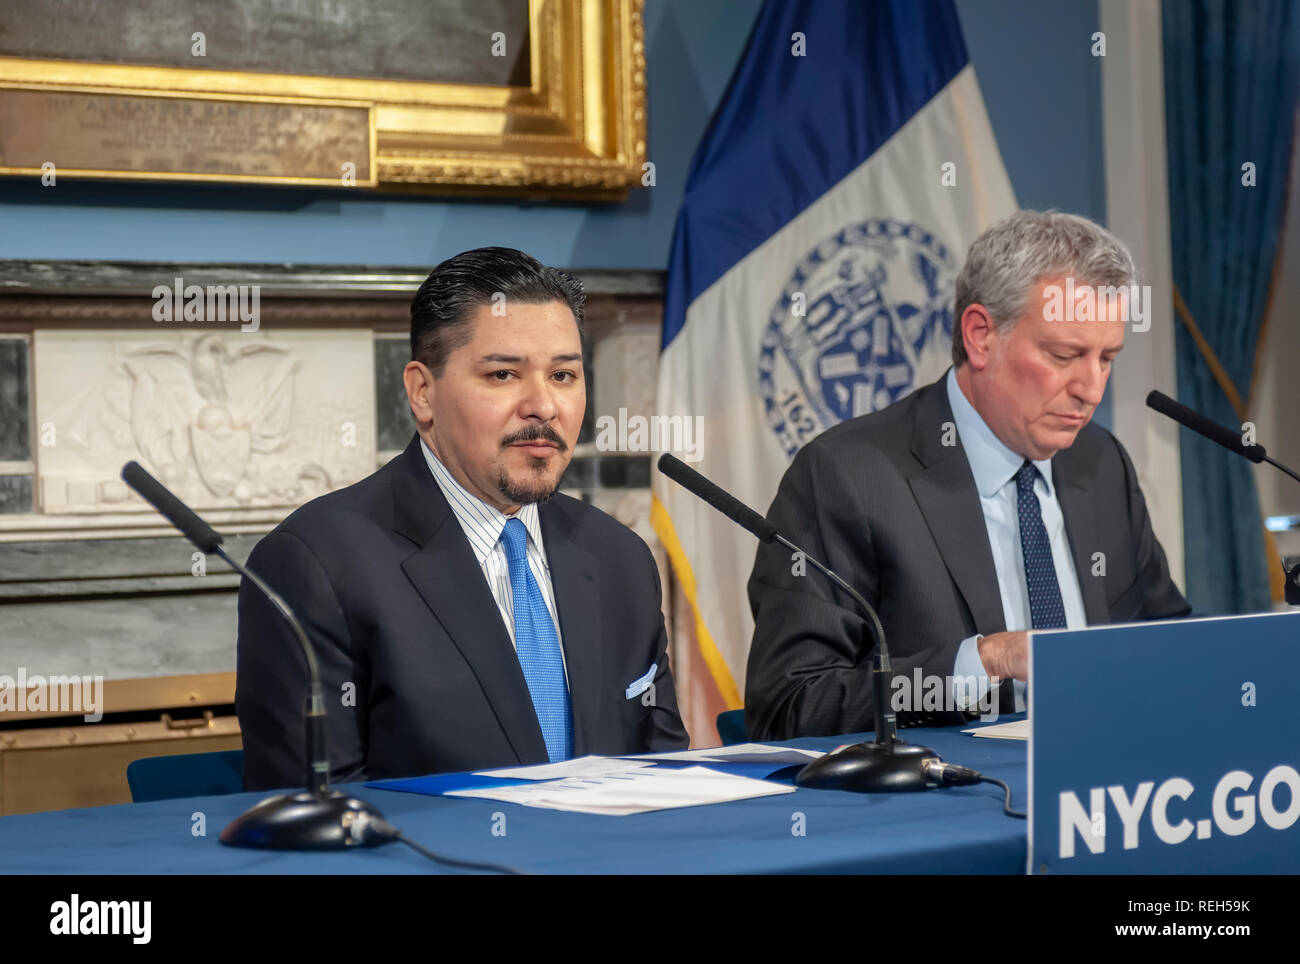 New York Mayor Bill de Blasio, right, and Richard A. Carranza, Dept. of Education Schools Chancellor at a press conference in the Blue Room in New York City Hall on Thursday, January 17, 2019 on failing schools. (© Richard B Levine) - Stock Image